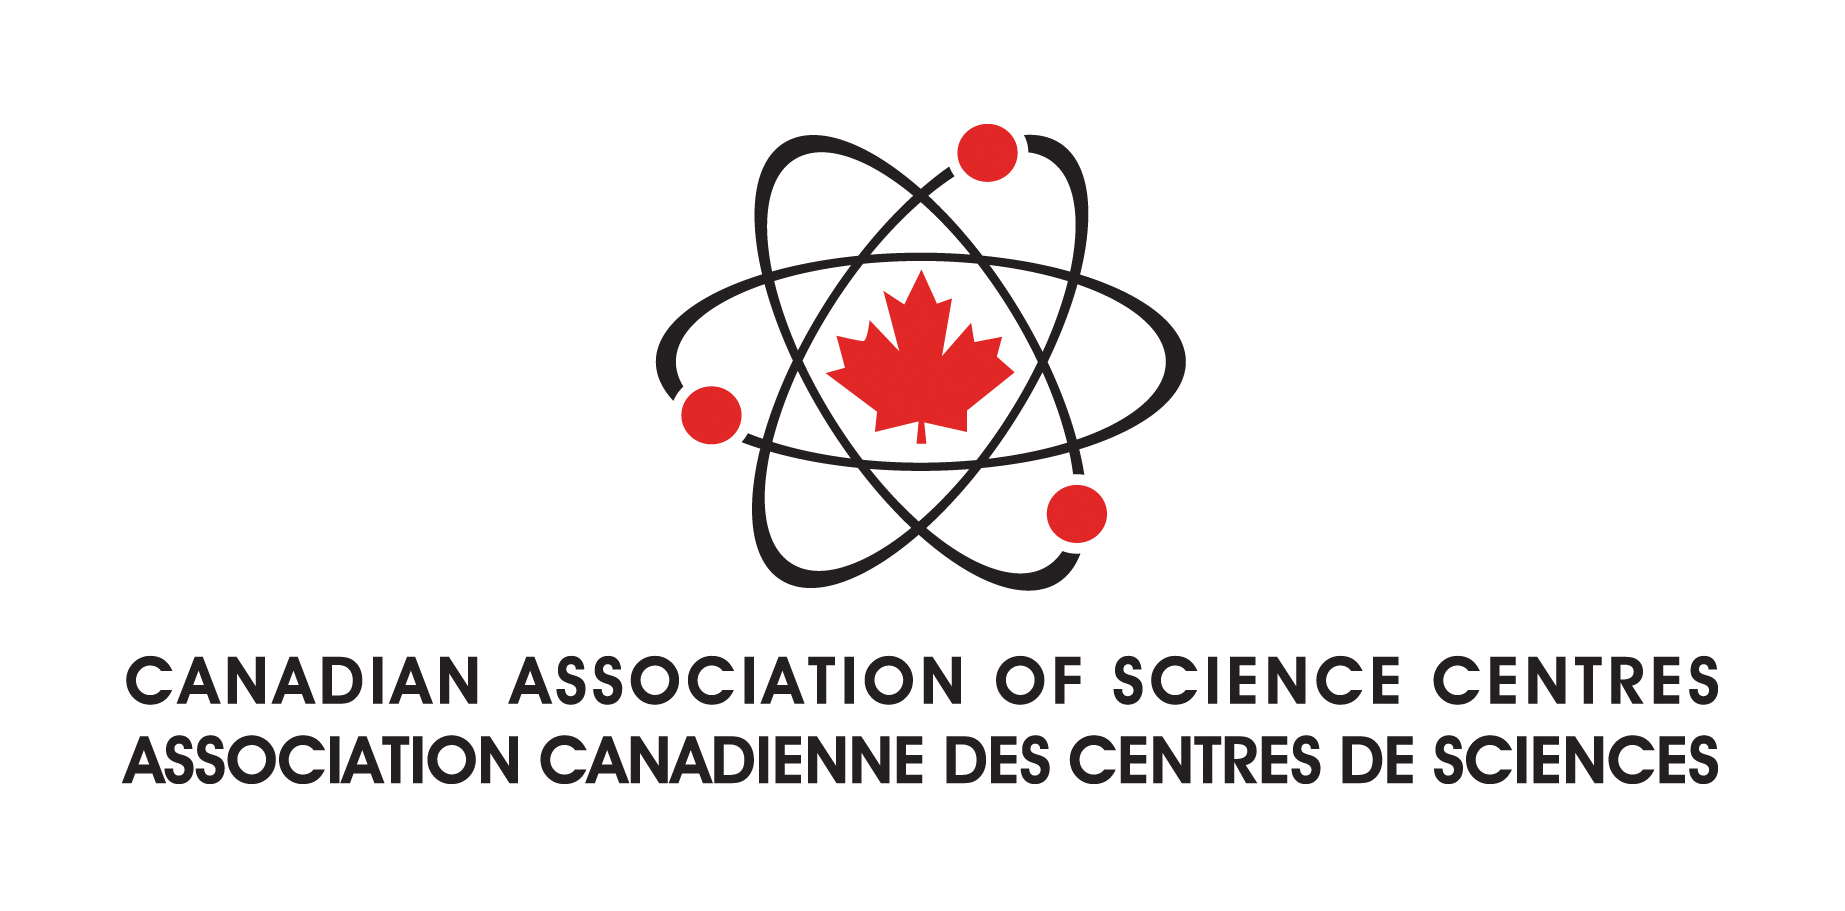 Canadian Association of Science Centers logo